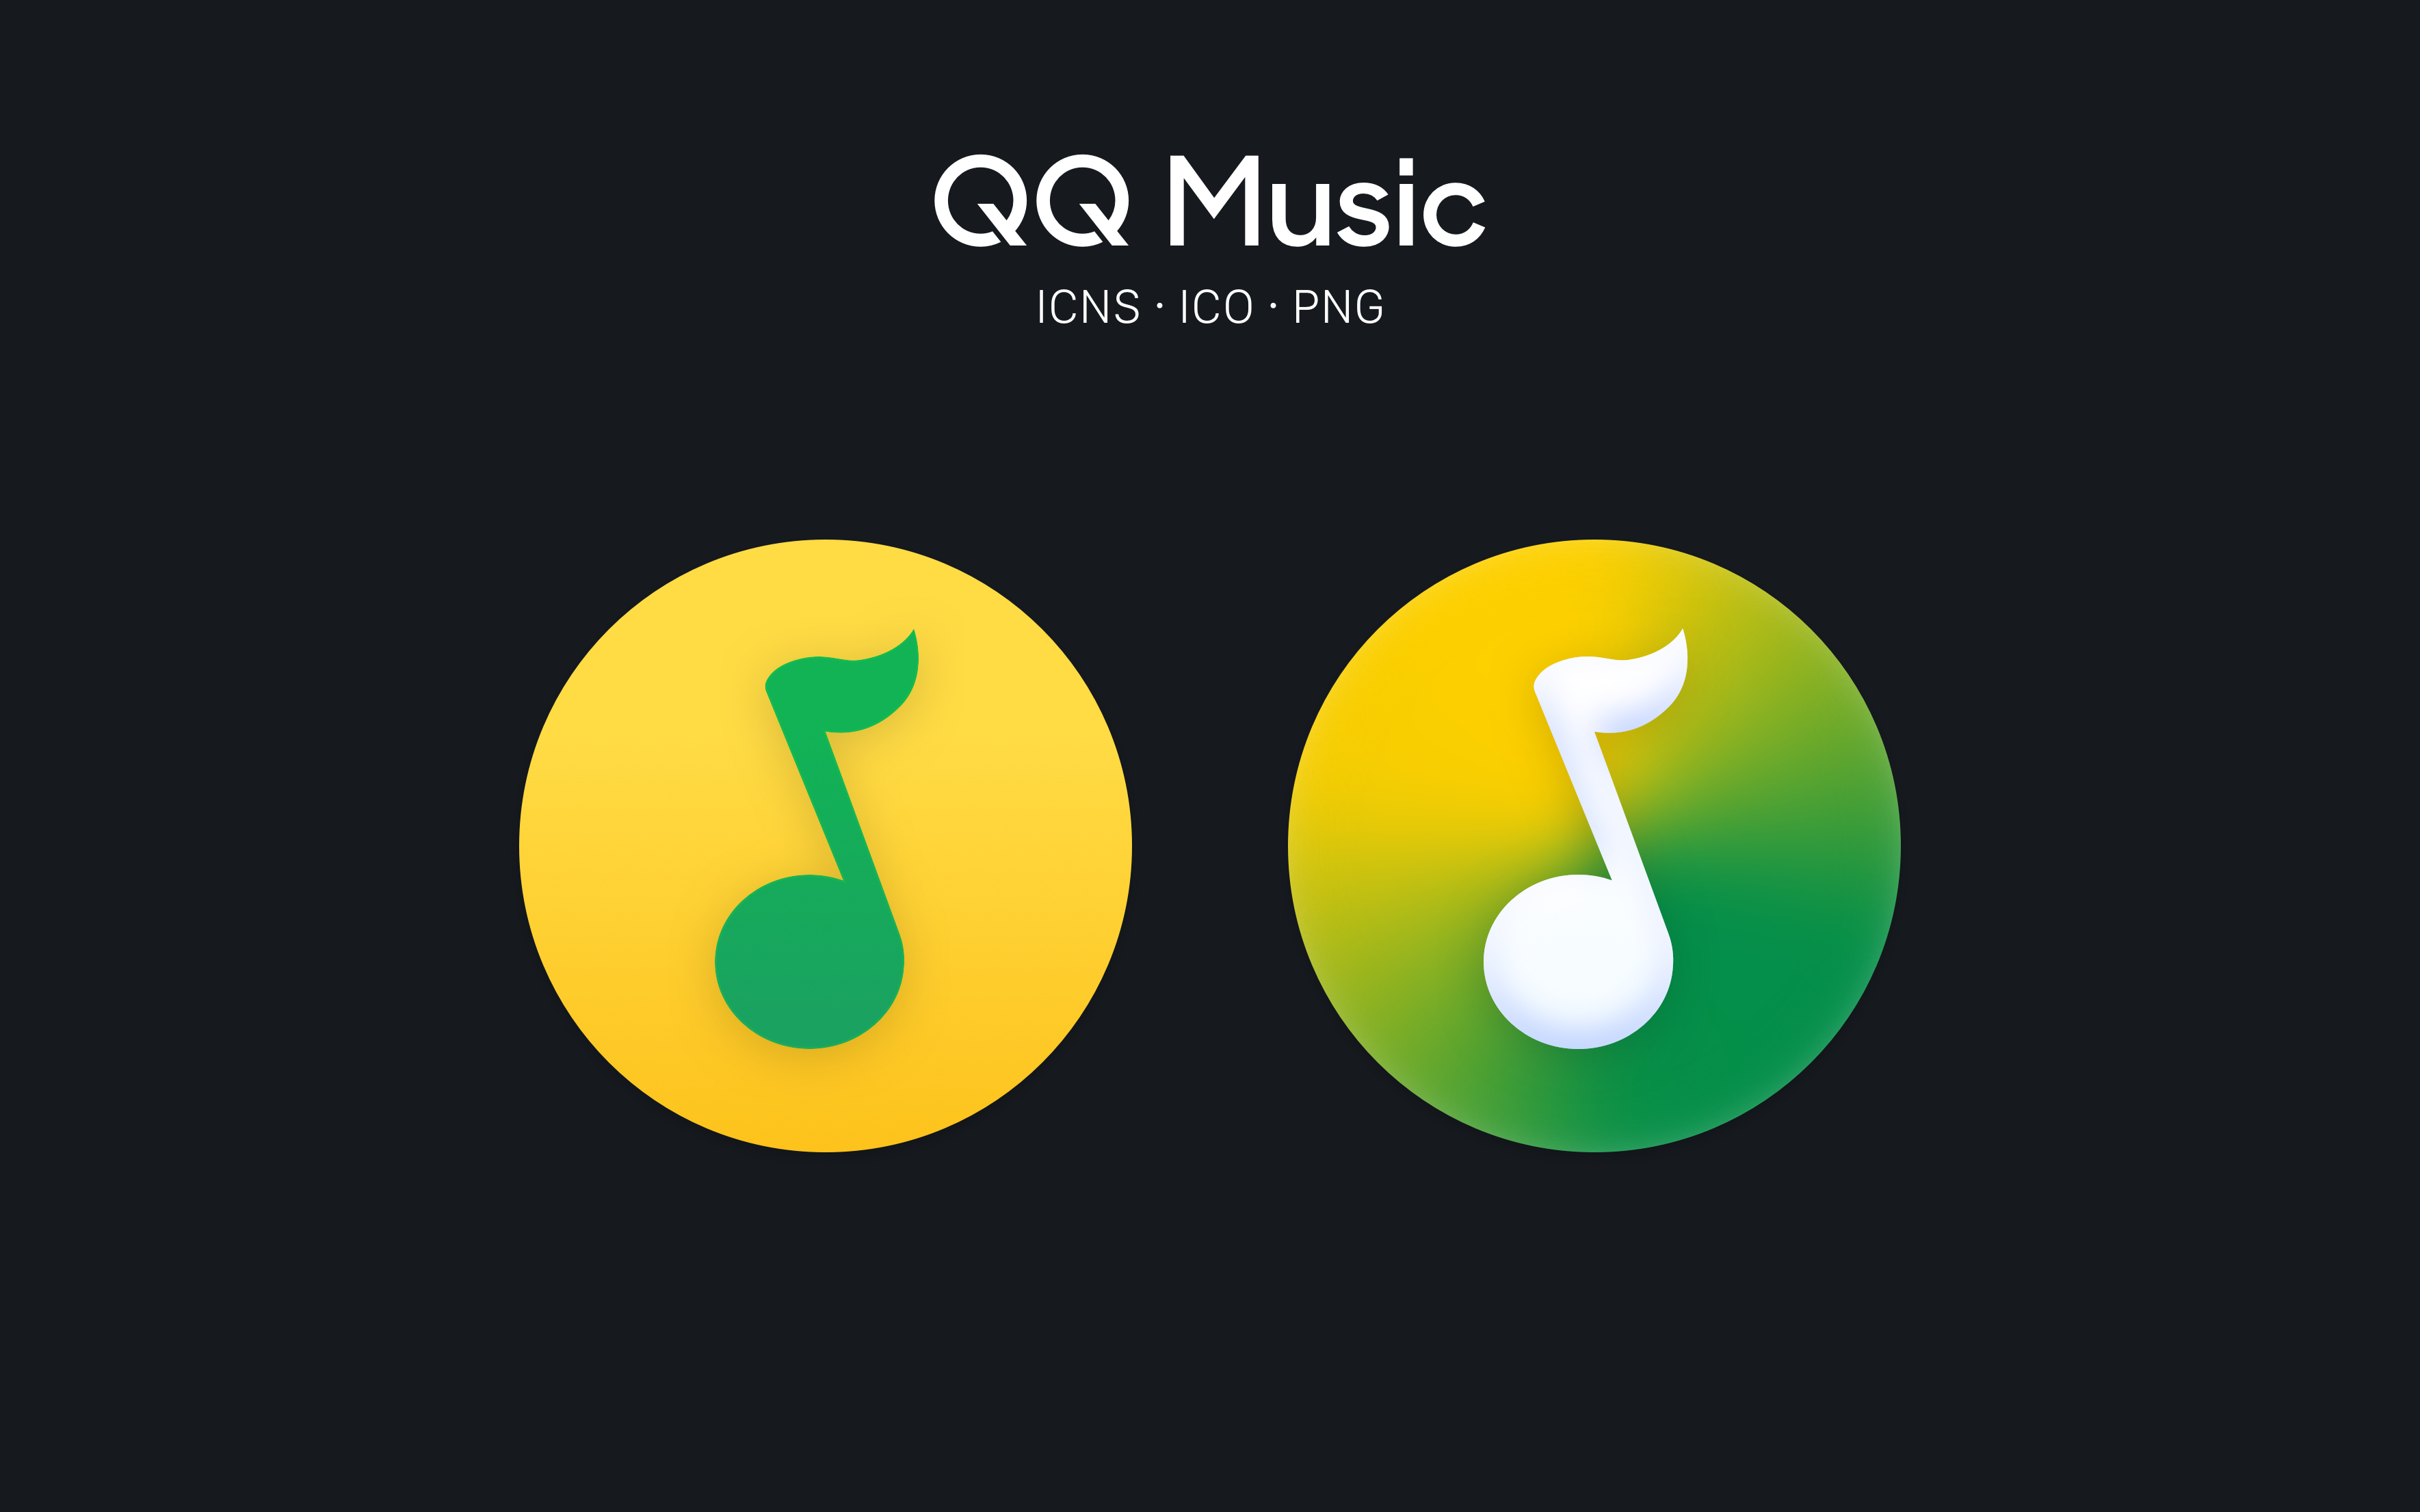 How To Use QQ Music Outside China On iPhone Android and Windows PC